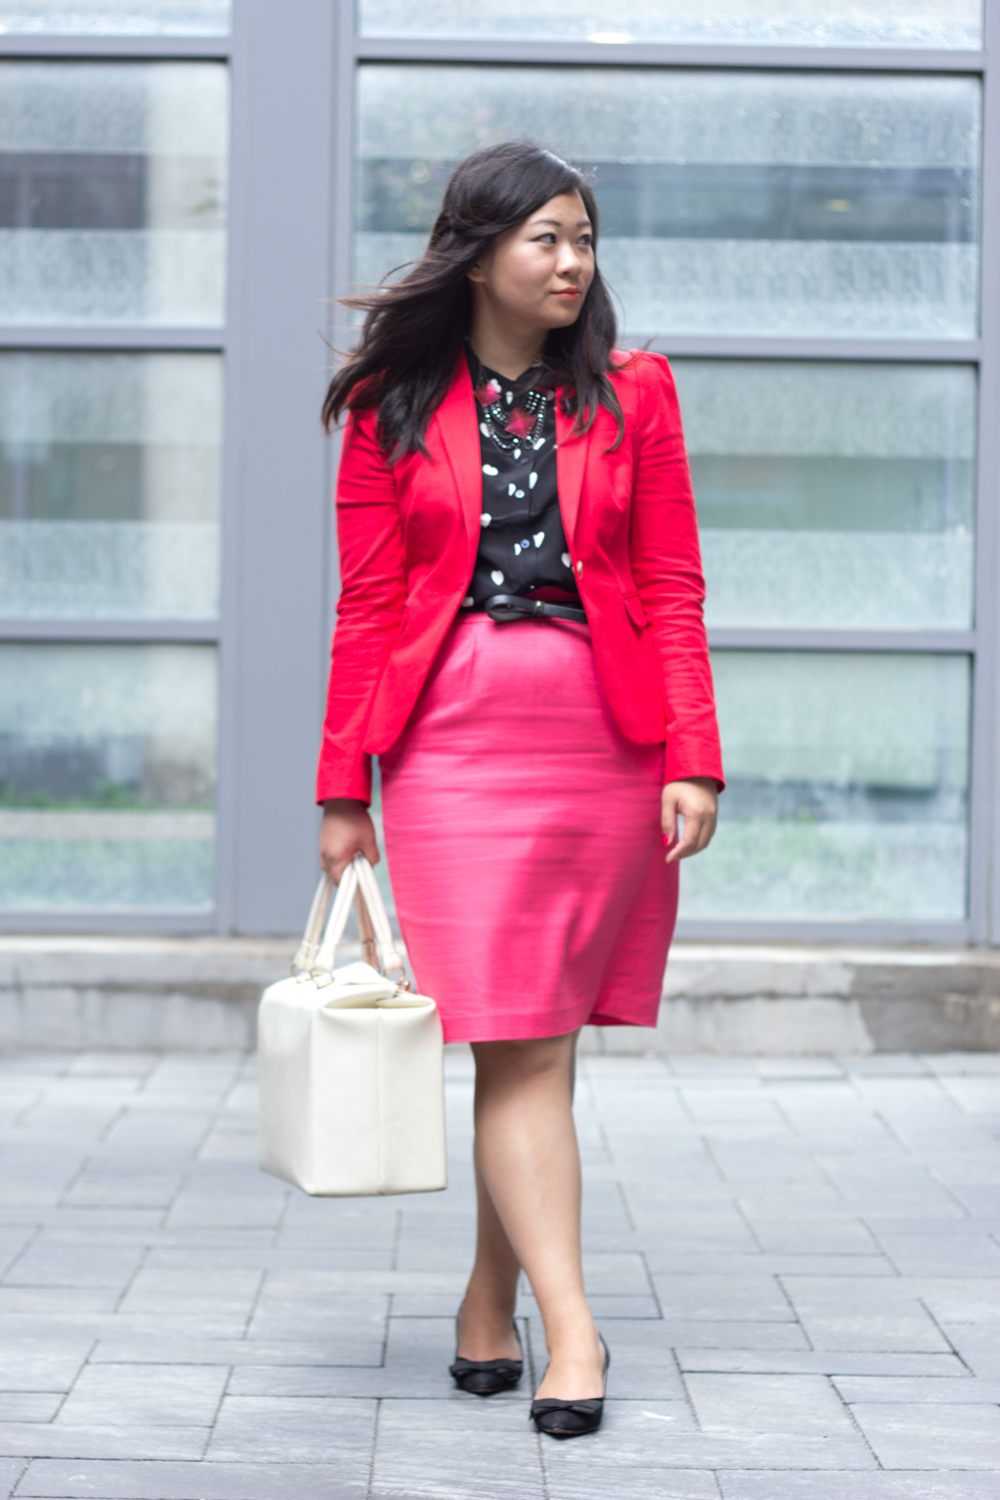 dress-for-work-tips, business-casual, Red-Blazer, pencil-skirt, heart-print-blouse